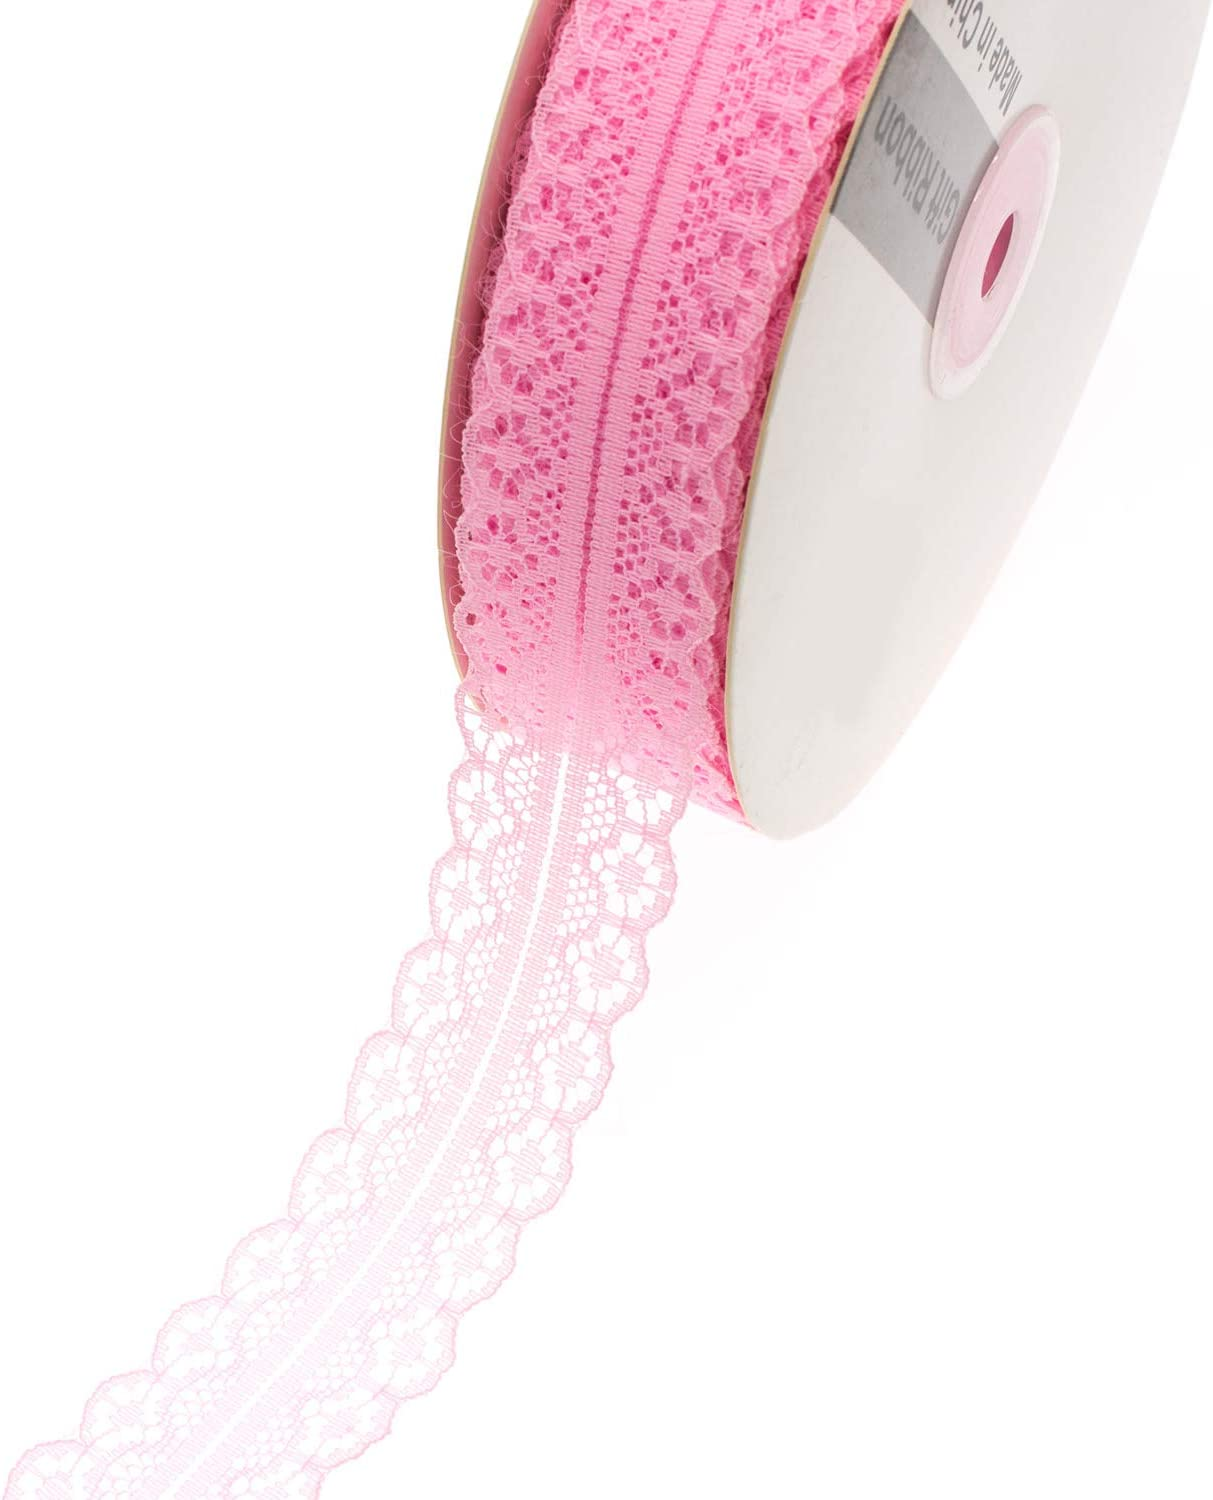 Handicraft and Gift Package Wrapping,49 Yards//Roll Pink ATRBB 49 Yards 1.18 Wide Polypropylene Fiber Lace Trim Ribbon for Flower Decoration Designing